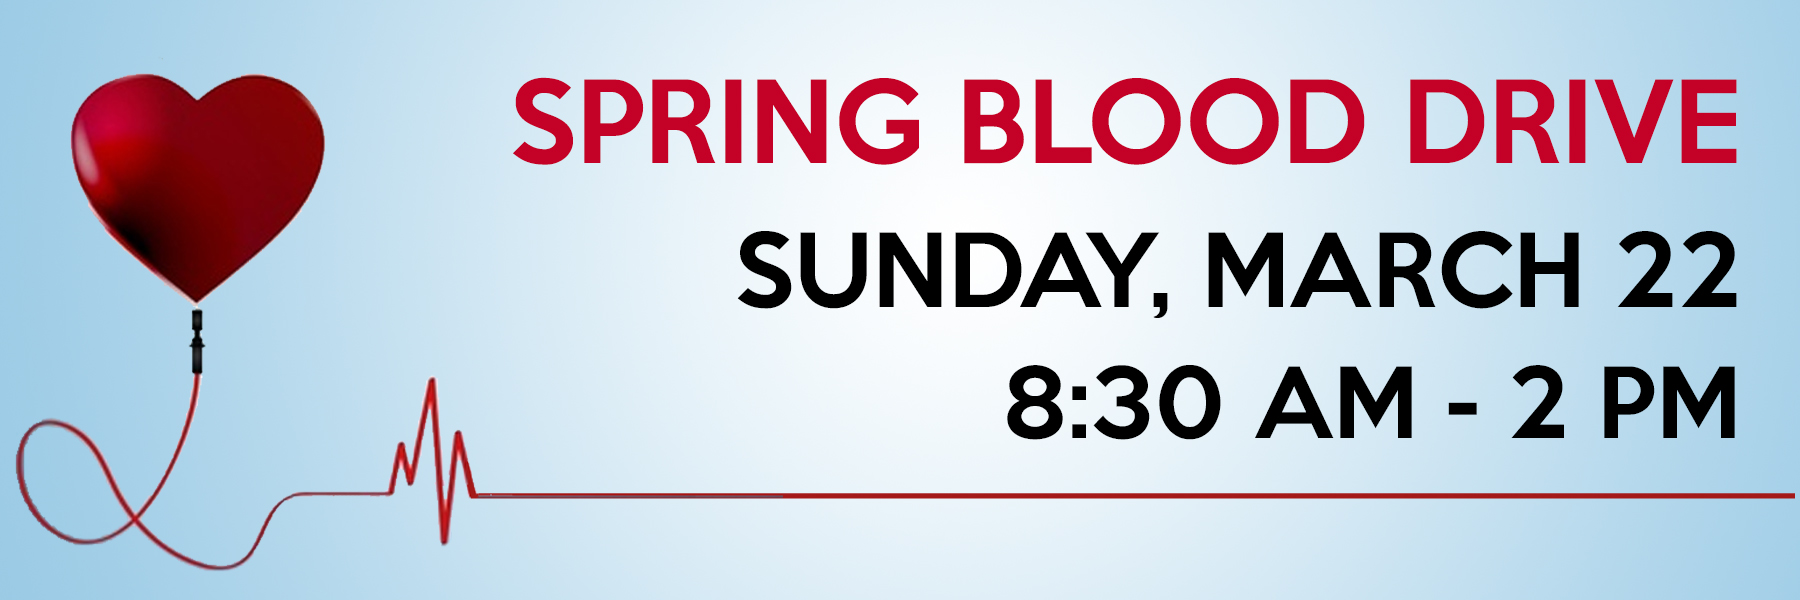 Barnert Temple Spring Blood Drive March 22, 2020